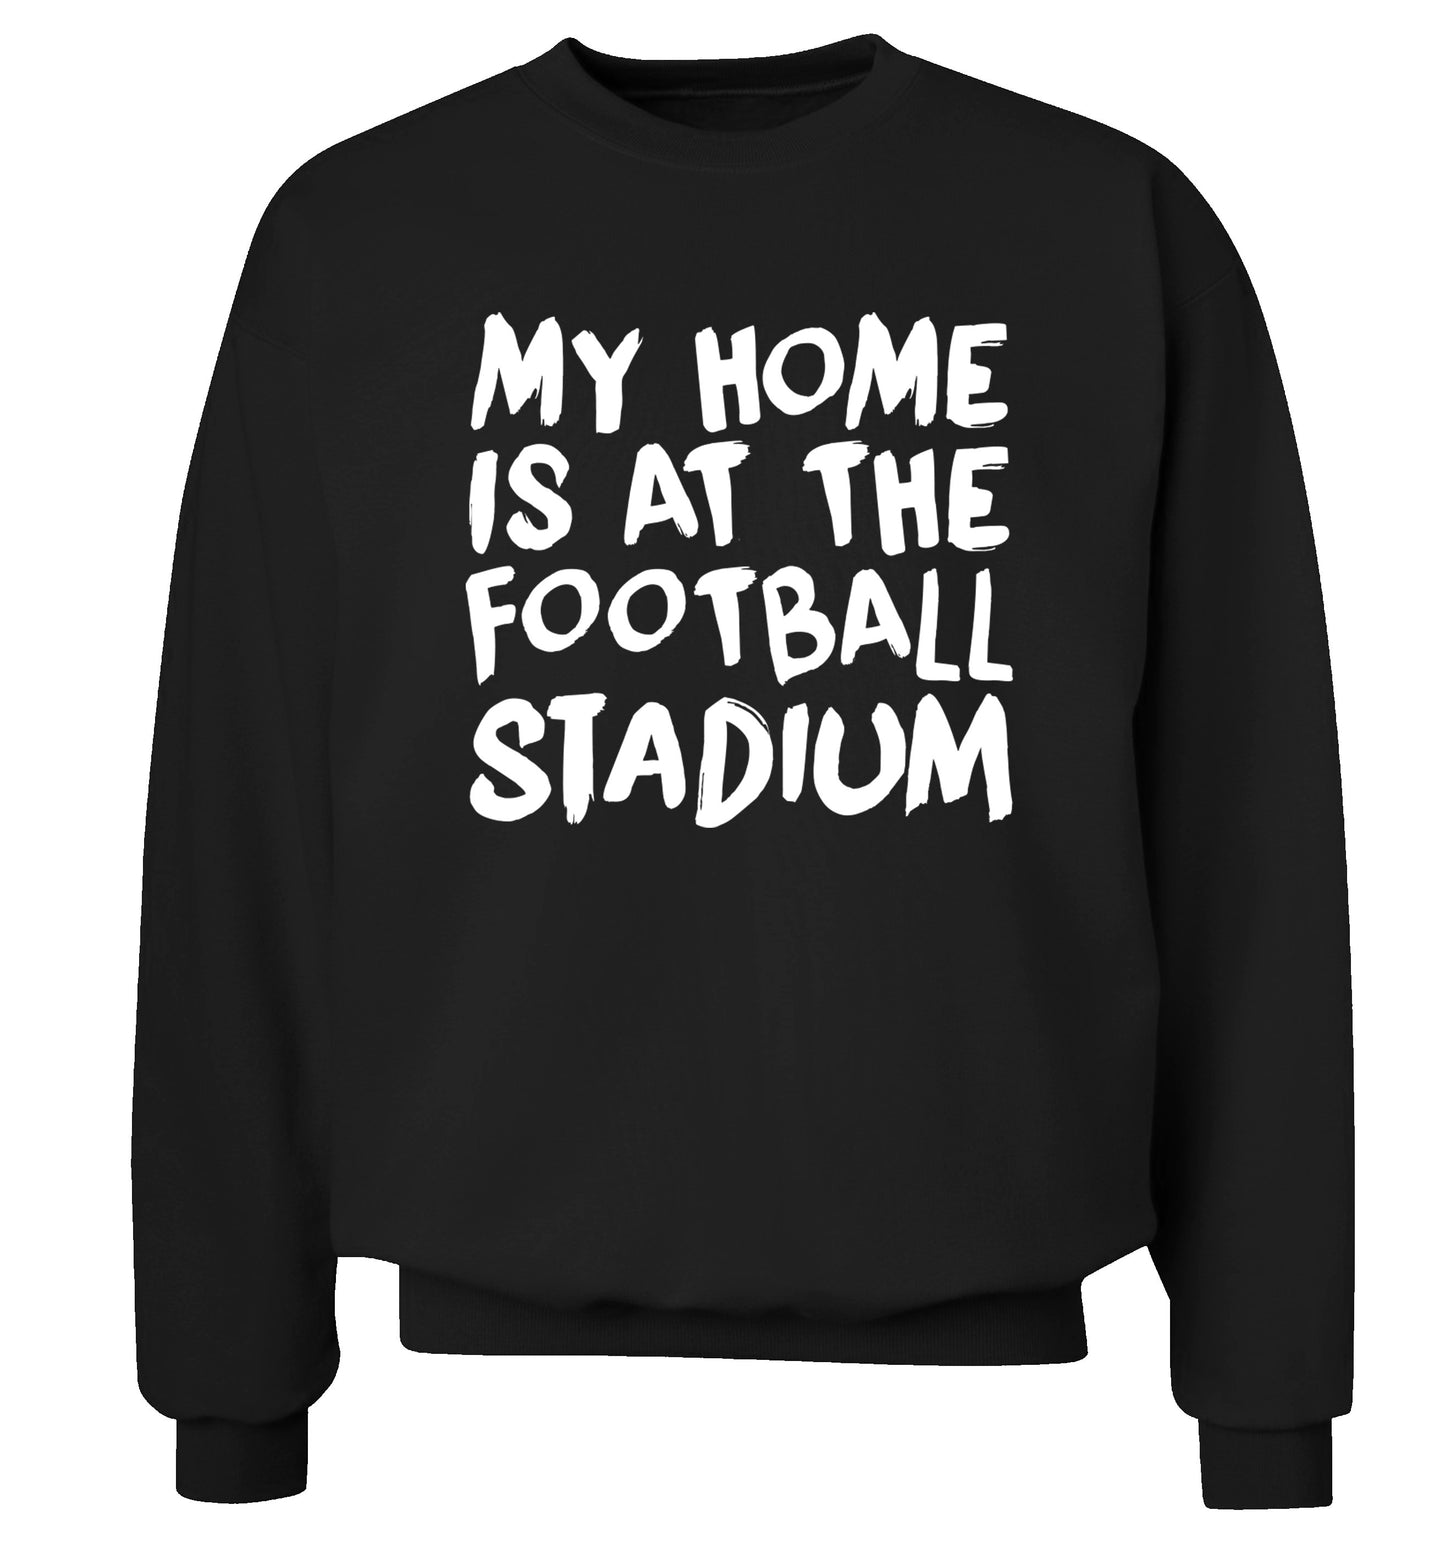 My home is at the football stadium Adult's unisex black Sweater 2XL